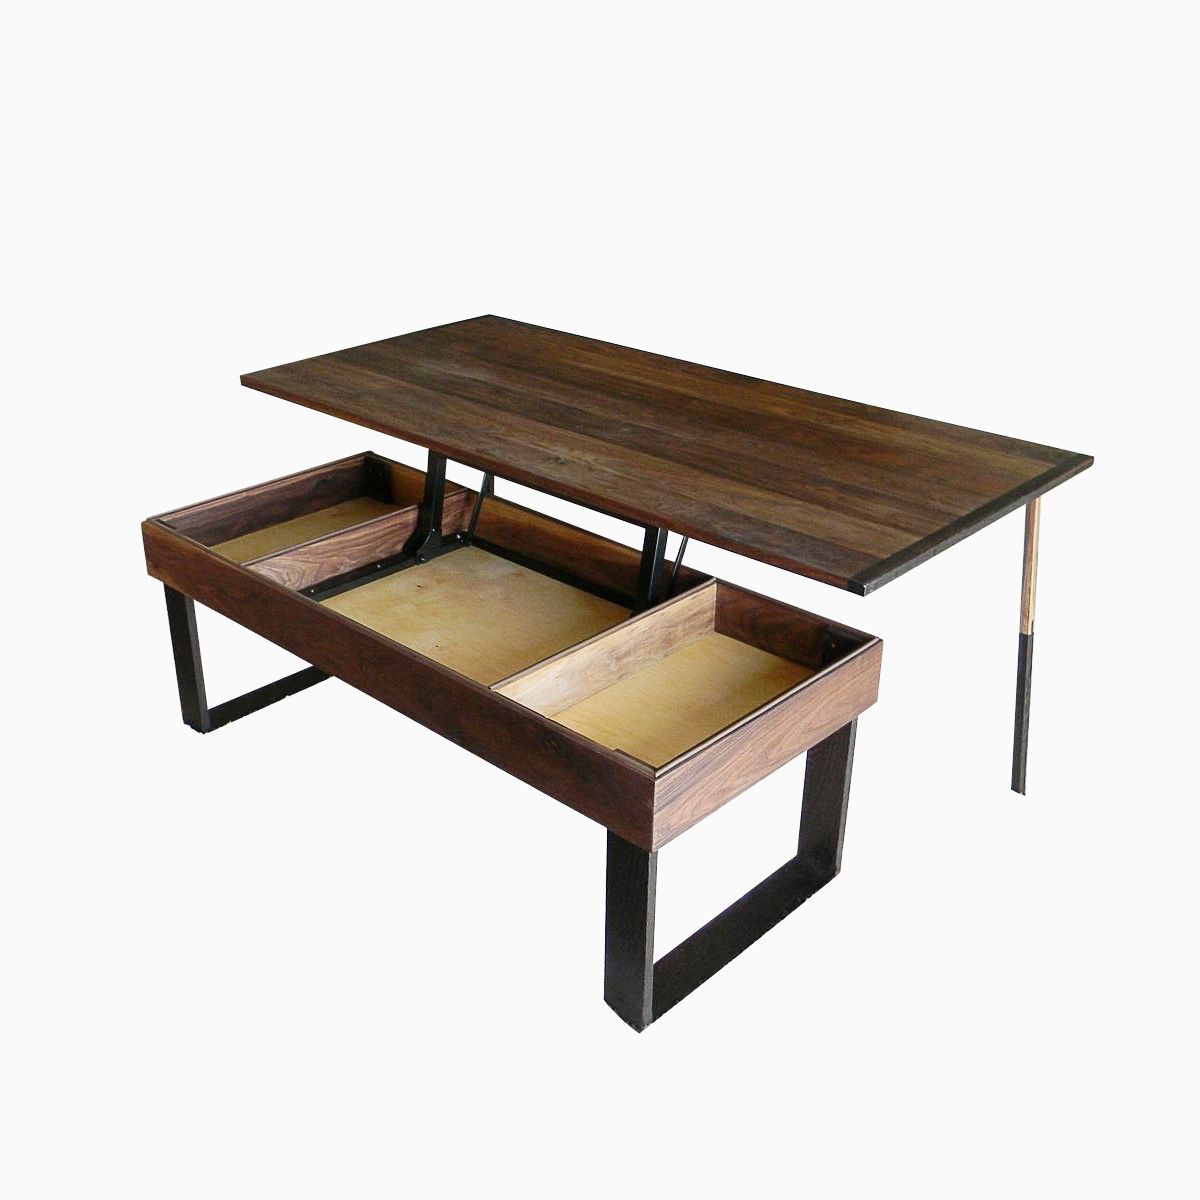 Top Lift Coffee Table Hand Made Terry 39s Lift Top Pop Up Walnut And Wenge